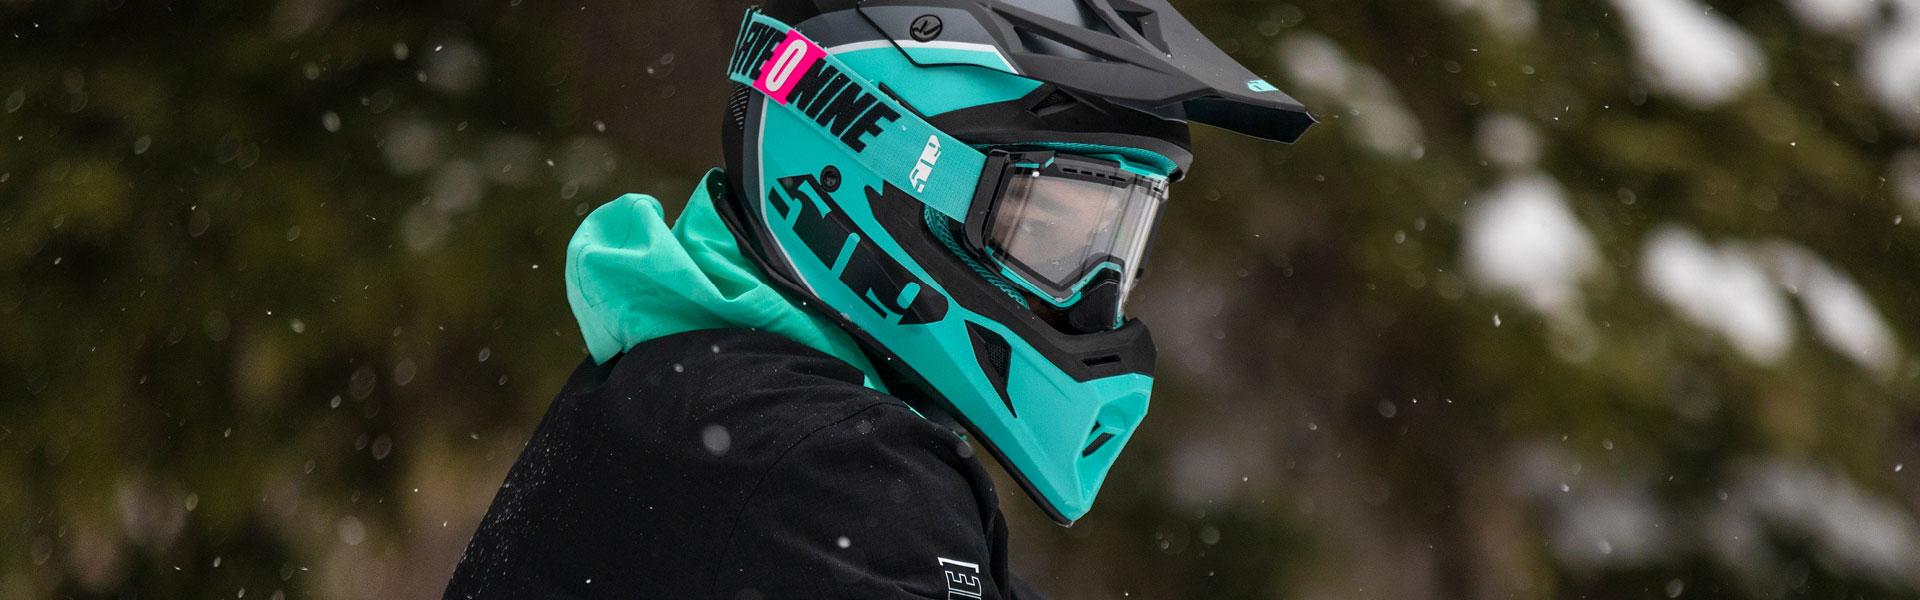 509 Sinister X6 Goggle